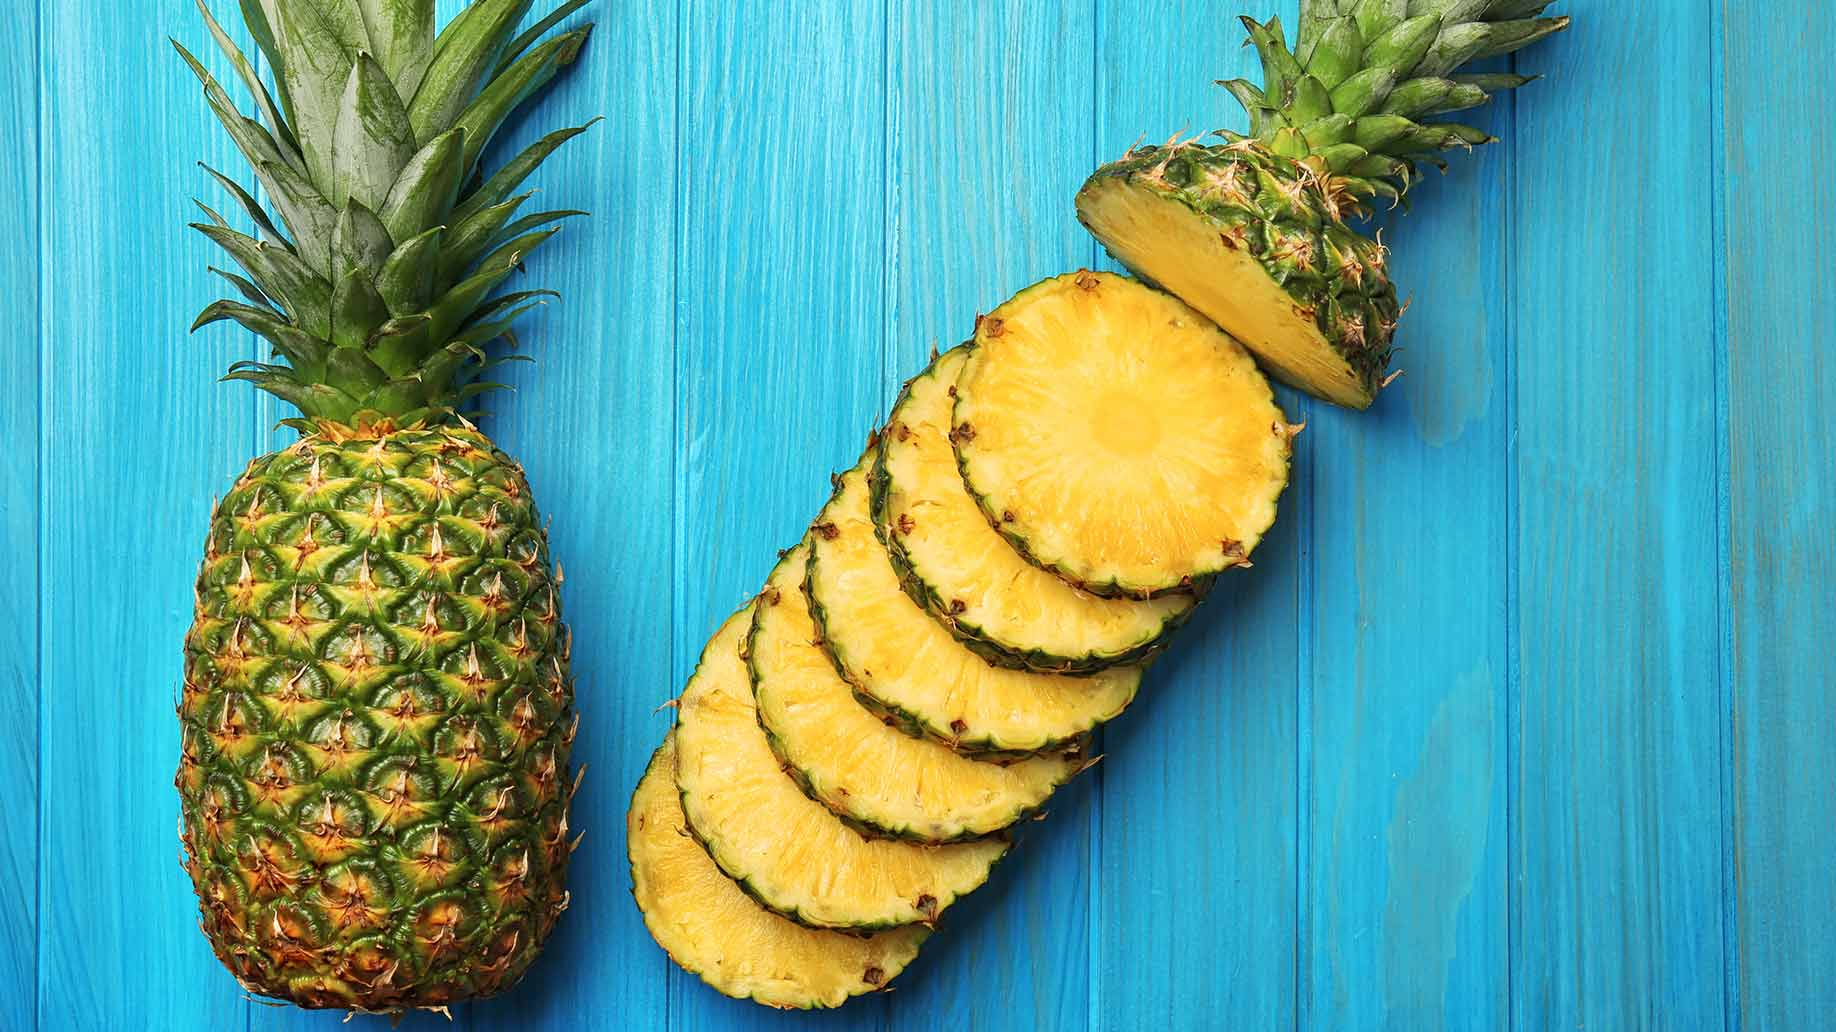 bromelain pineapple urinary tract infection uti natural remedies